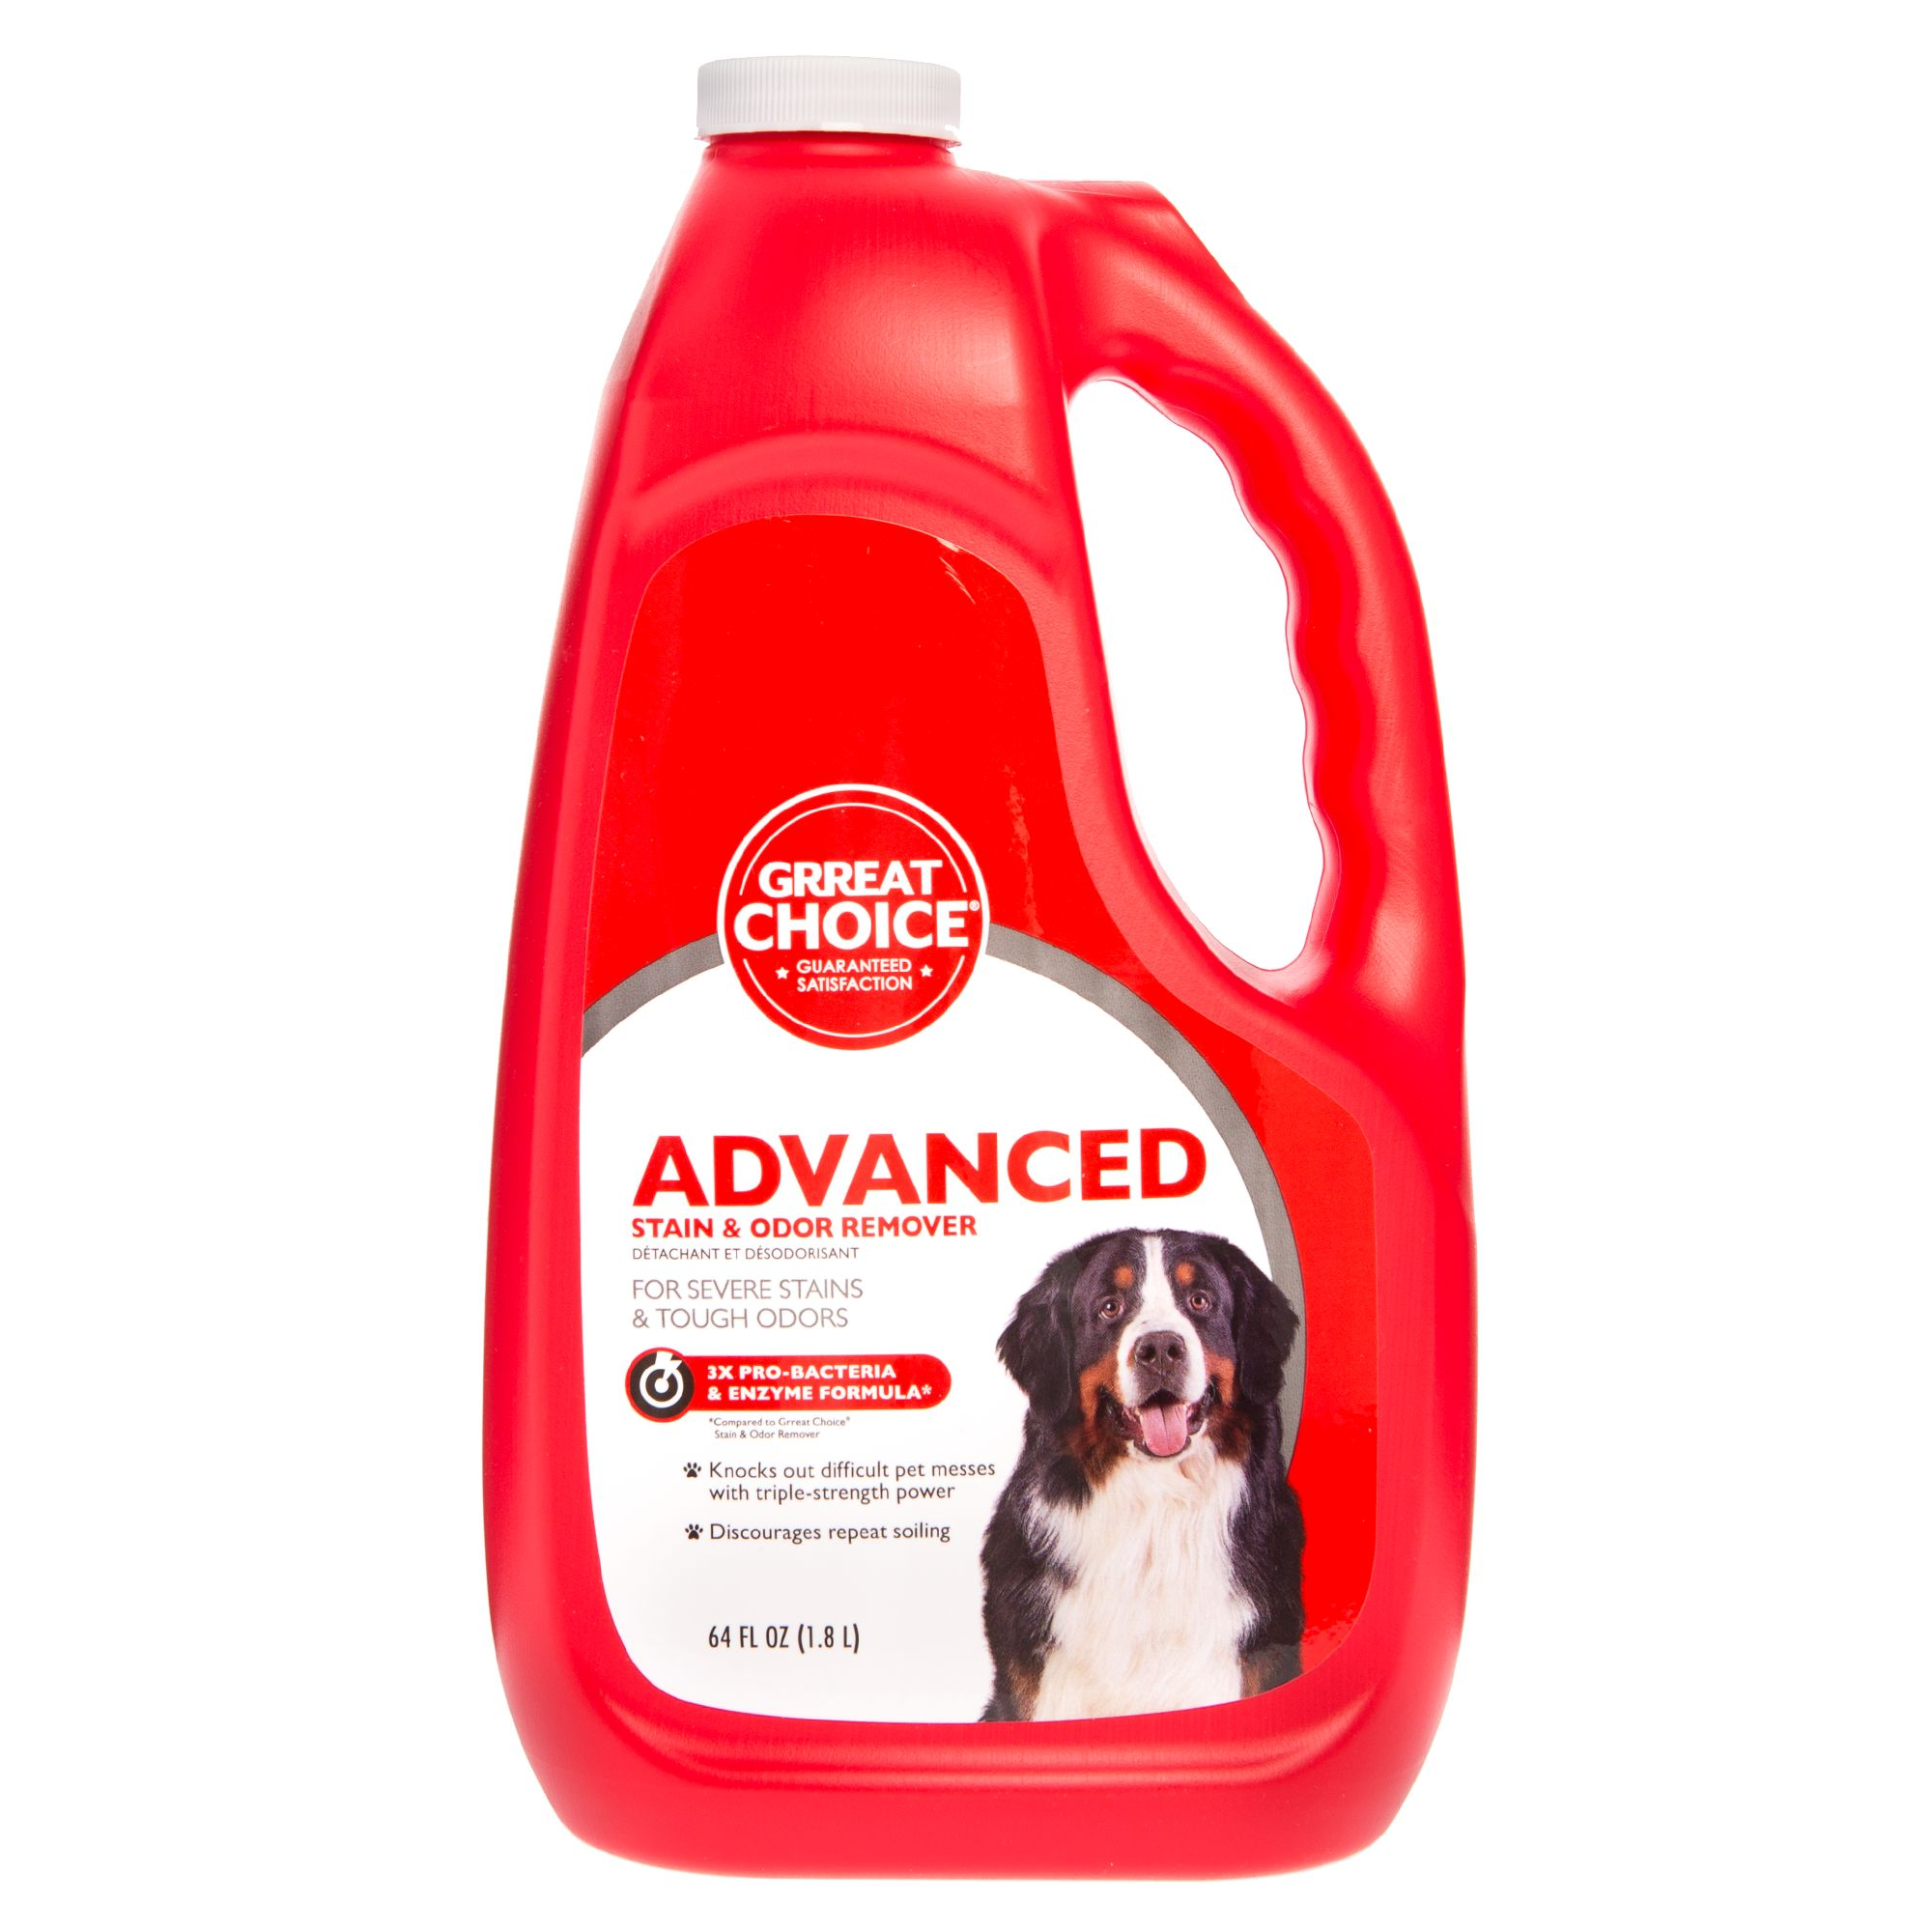 Grreat Choice Advanced Stain And Odor Remover Size 64 Fl Oz